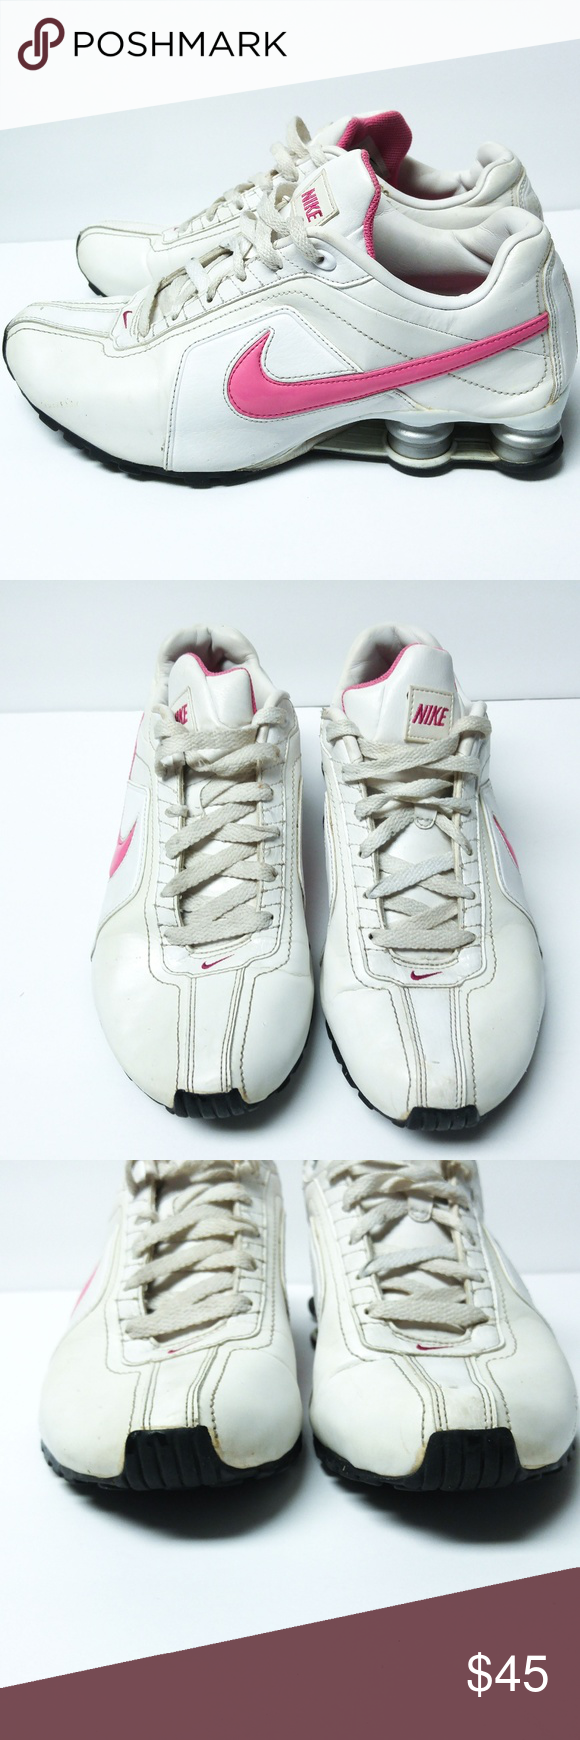 check out 07f3f a36fe Nike Shox Sz 10 Conundrum White Pink Nike Shox Sz 10 Conundrum White Pink  Great Condition